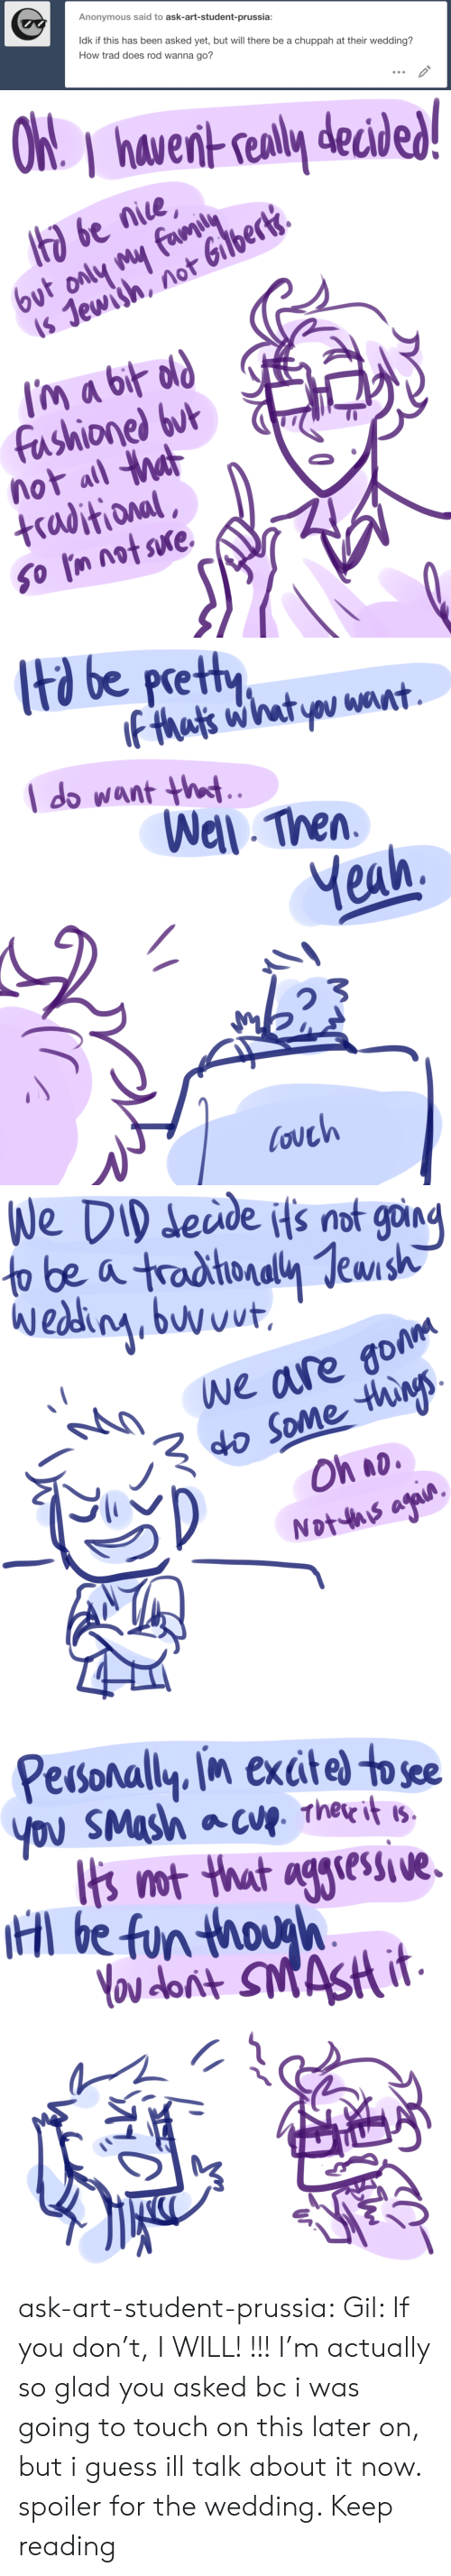 spoiler: Anonymous said to ask-art-student-prussia:  ldk if this has been asked yet, but will there be a chuppah at their wedding?  How trad does rod wanna go?   hawernt sealy decid  ta be nice  is Jewish, not Gilbert.  fashionel but  not all a  +raditional   td be pretty  l do want ht  Wel Then  Yeah,  ouch   eude Hs not goin  We are go  o Some thins  Oh ao   Pesonally in exctel to see  Ibs ot that aglese.  l be fun thouh ask-art-student-prussia:  Gil: If you don't, I WILL! !!! I'm actually so glad you asked bc i was going to touch on this later on, but i guess ill talk about it now. spoiler for the wedding. Keep reading